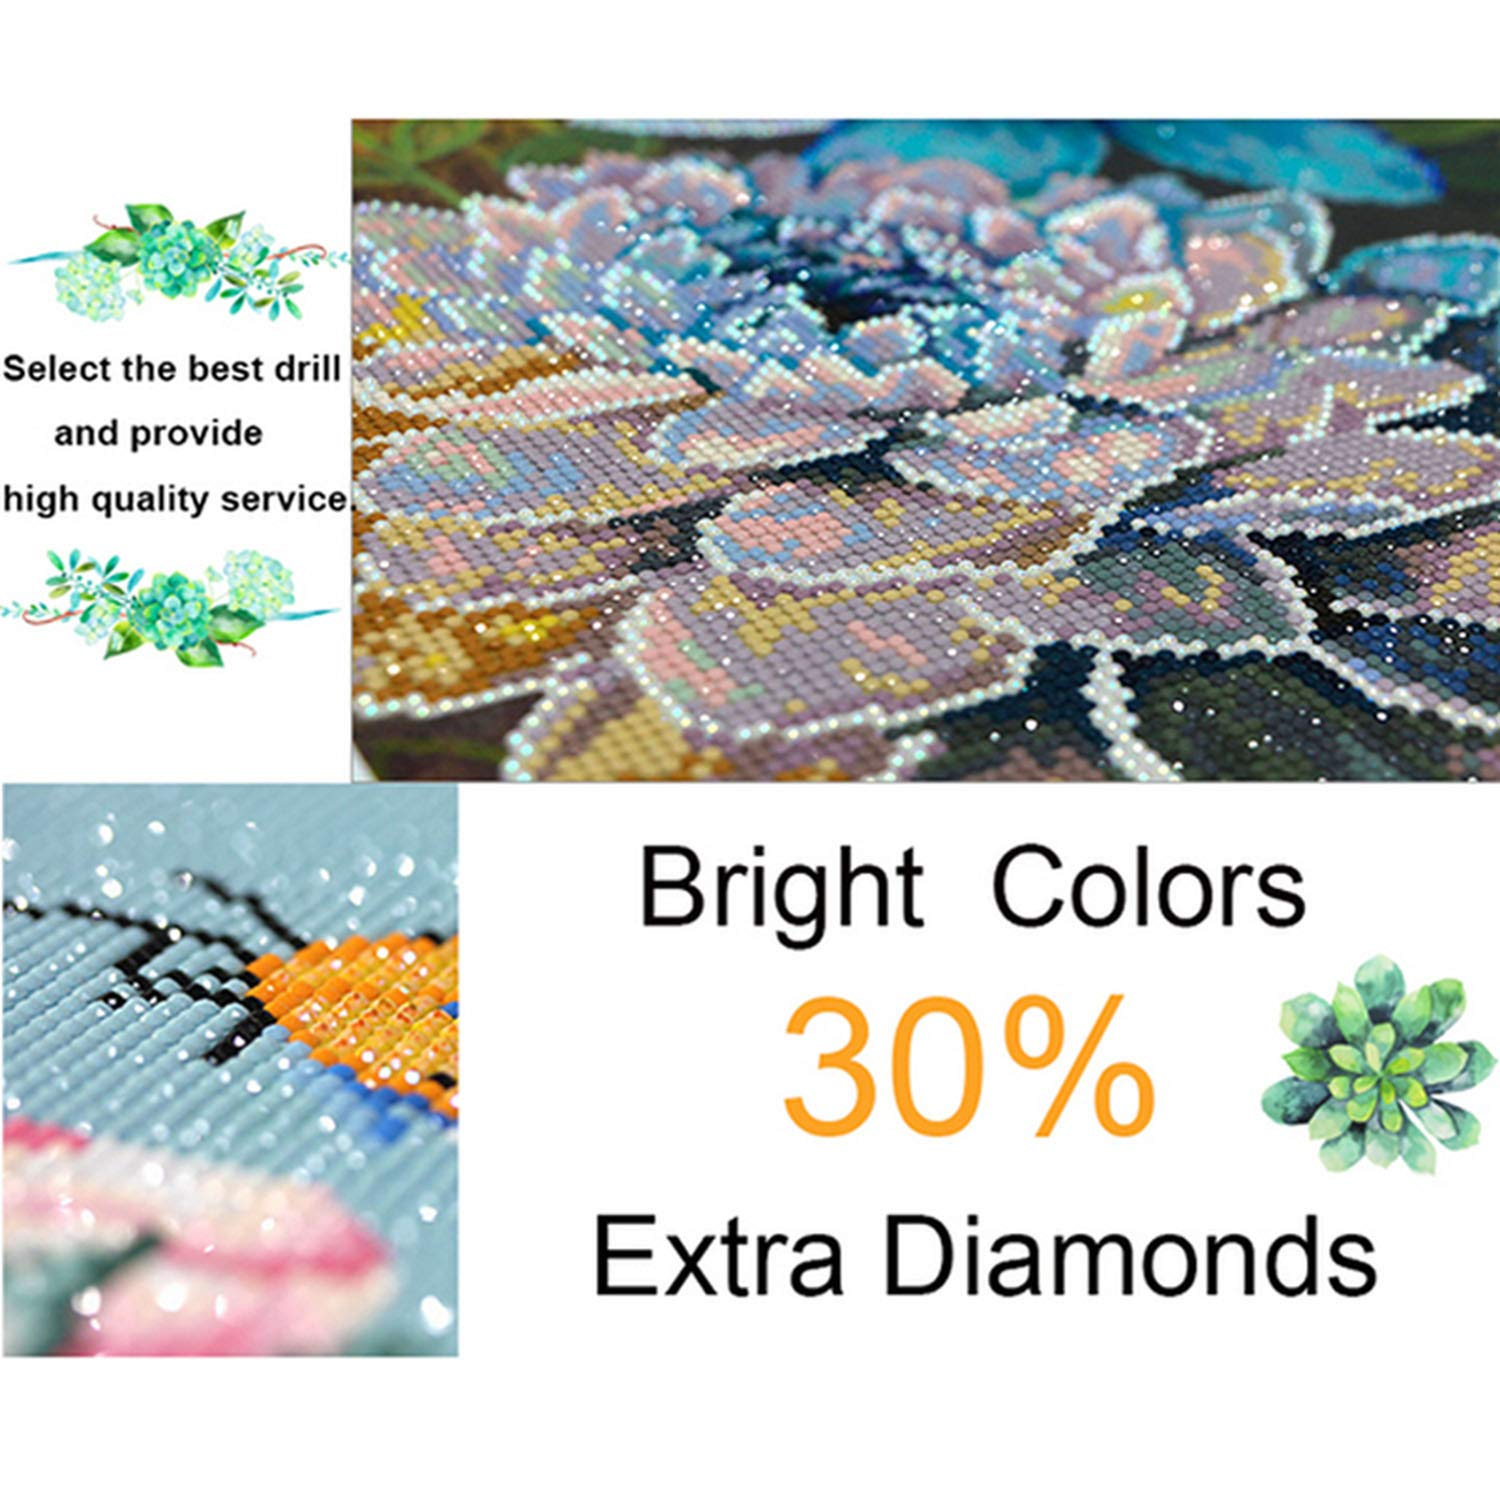 5d DIY Diamond Embroidery Sunrise Landscape Cross Stitch Full Round Diamond Sea Diamond Painting Rhinestones Love Gift,Green,85x115cm by ONLY-FOR-ME-1 (Image #4)